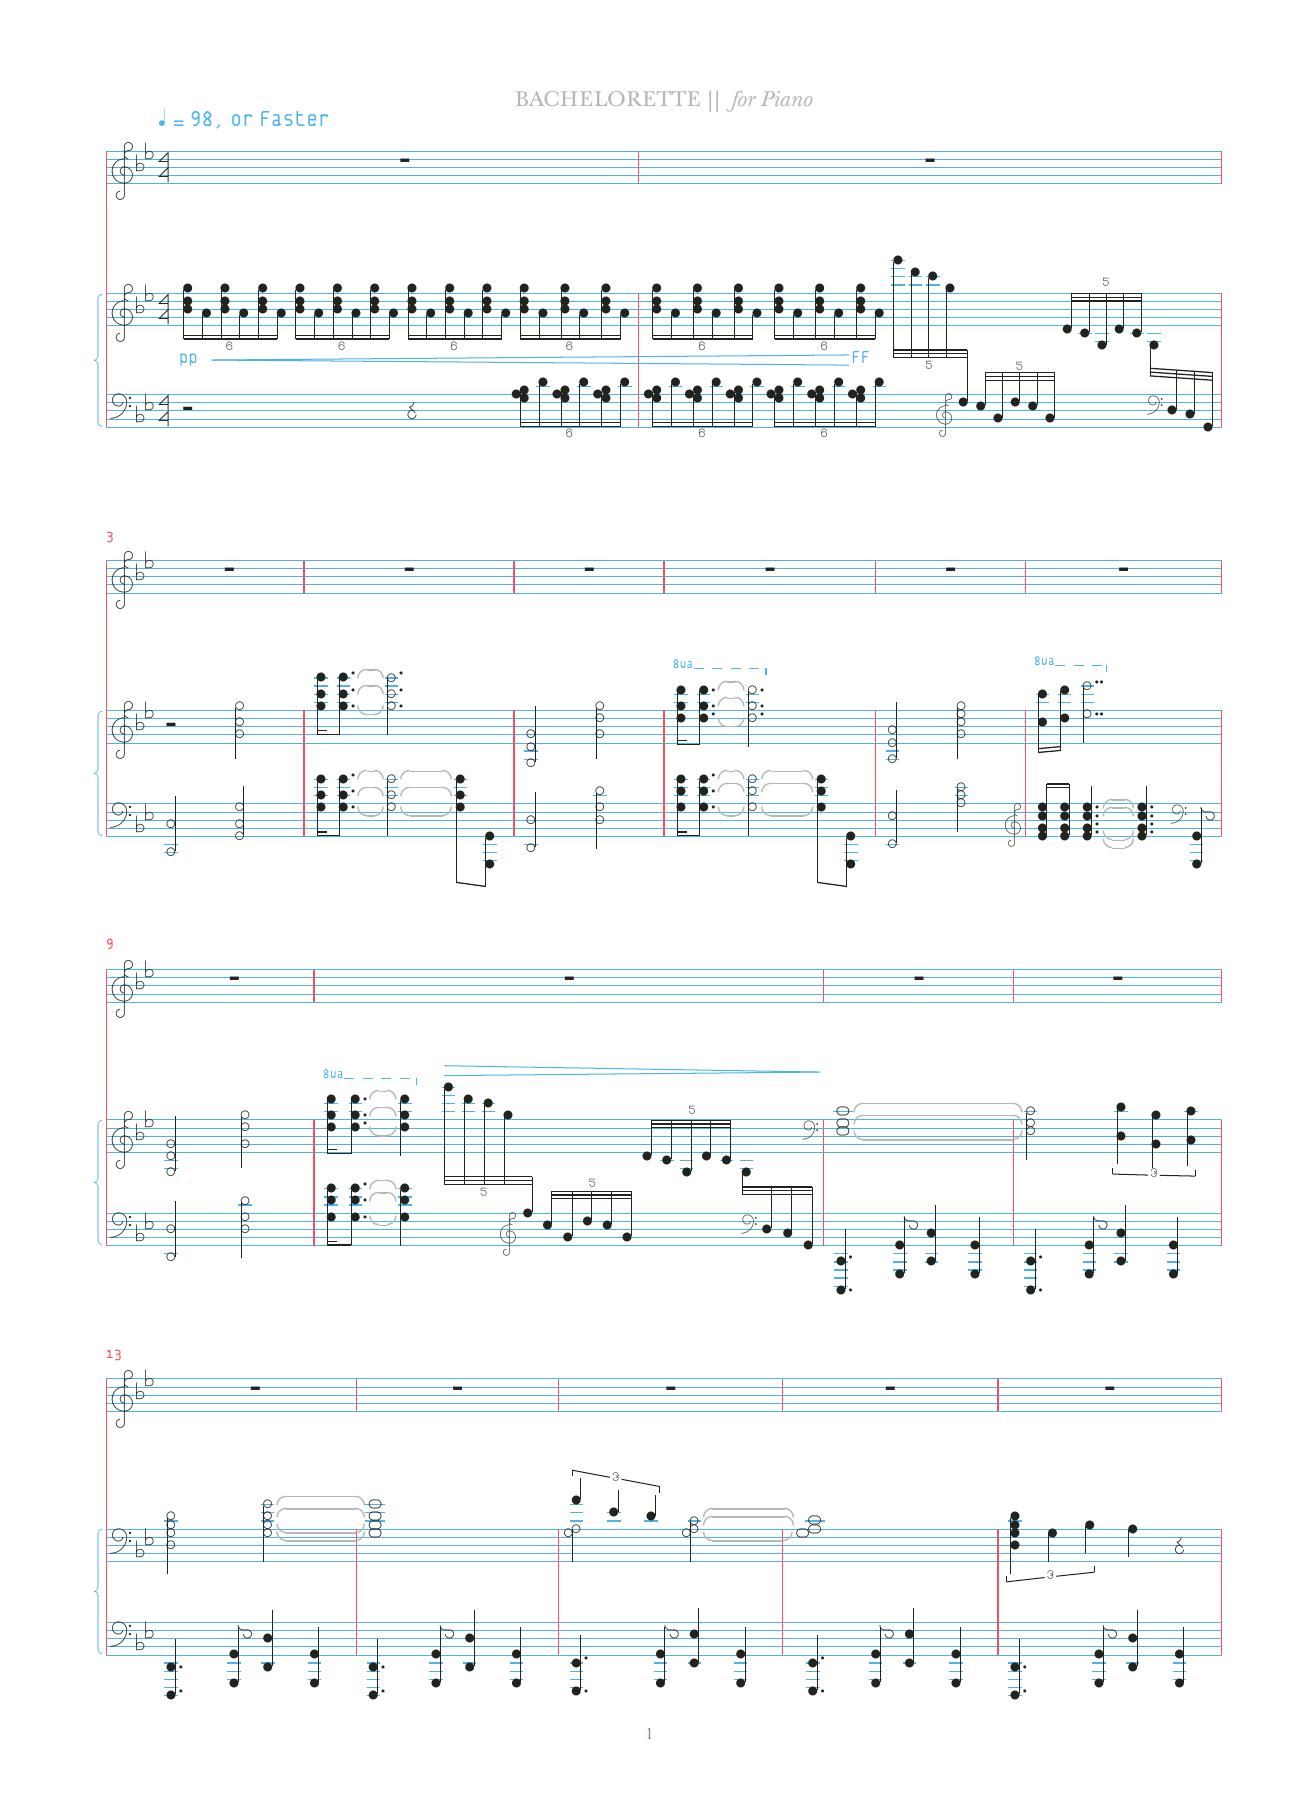 Bachelorette Sheet Music